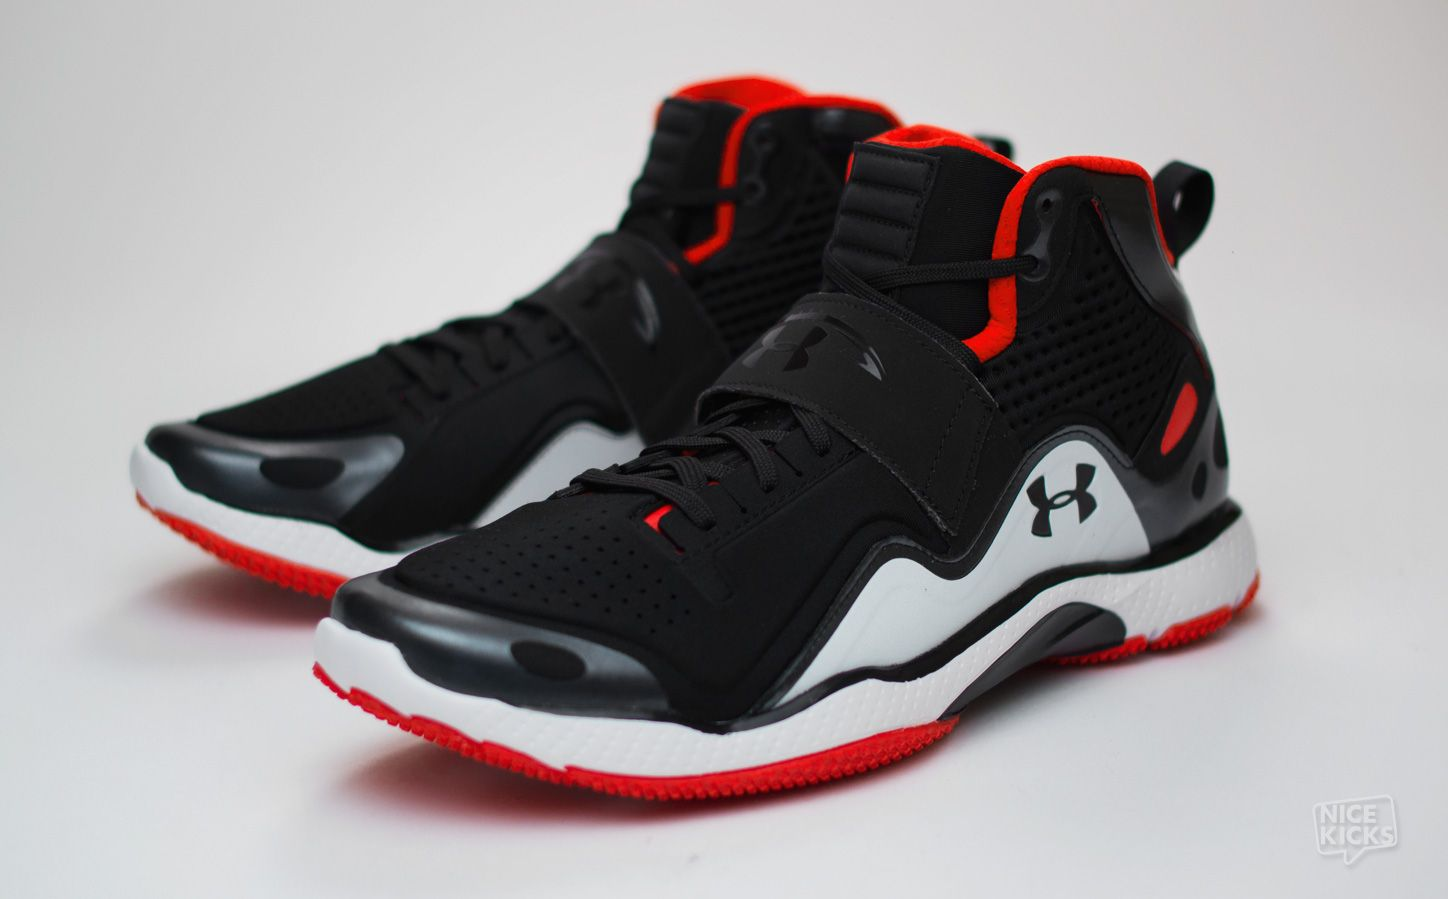 under armour trainers. the under armour micro g gridiron trainer is seen in detailed images. learn more about this training shoe at nice kicks. trainers